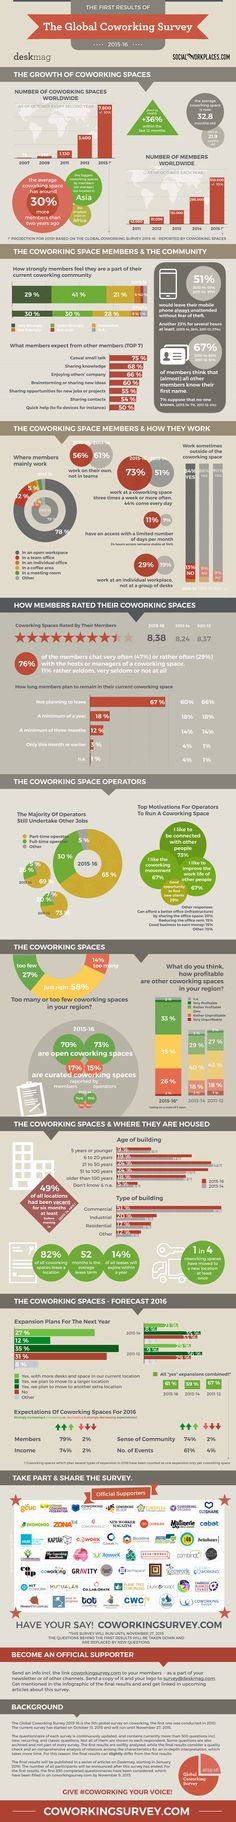 All stats are also summarised in an article on: http://www.deskmag.com/en/first-results-of-the-new-global-coworking-survey-2015-16